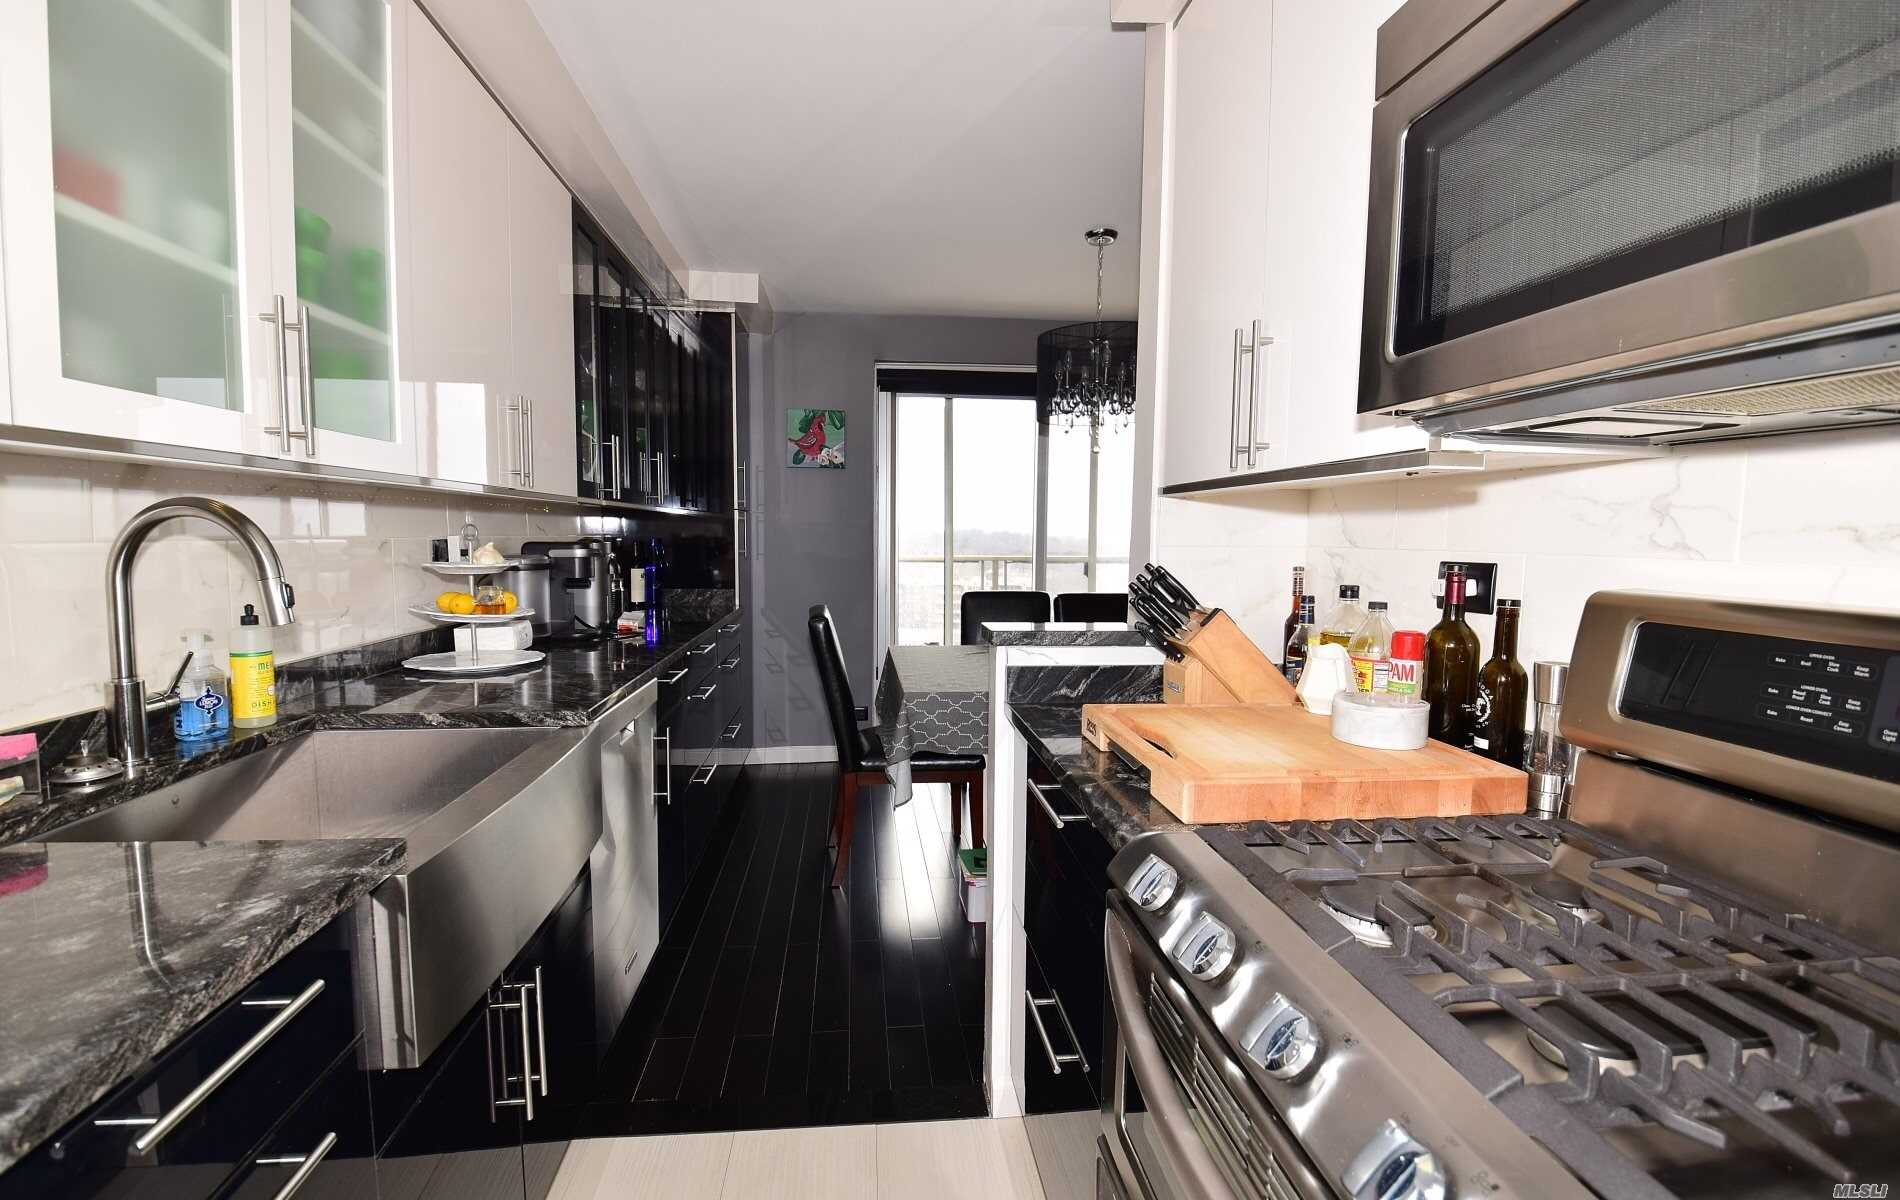 Resort-Style Living, Corner Deluxe One Bedroom Jr-4, 16th Floor, Dining Room, Upscale Extended Kitchen With Commerical Stainless Steel Appliances, Top Of The Line Wood Cabinets, Granite Counter Tops, Bamboo Hardwood Floor, Mable Bathroom, . Largest Tiled Terrace With Unobstructed Views Of Manhattan Skyline, Bridges & Water, Dog Friendly, Reserved Indoor Parking, Gym, Pool, Tennis, Stores, 30 Mins From City By Lirr Or Express Bus, 24Hr Notice Needed.